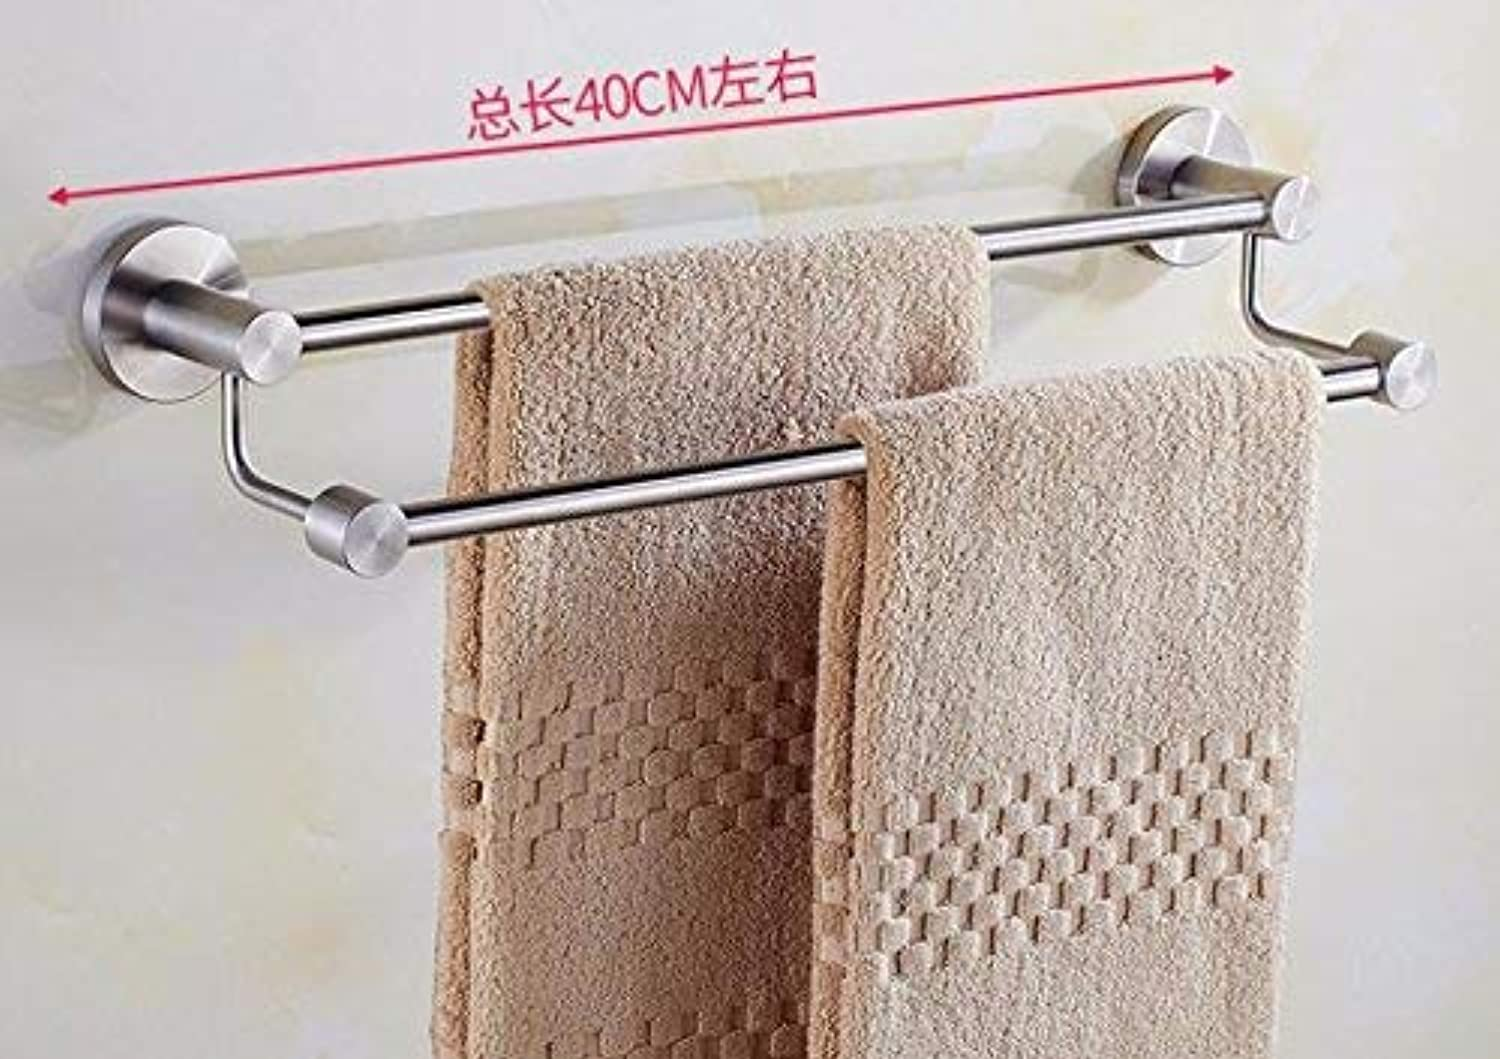 TOWEL RACK HOME European-style antique greenical copper faucet single wrench type bathroom washbasin hot and cold European style retro hot and cold water mixing faucet